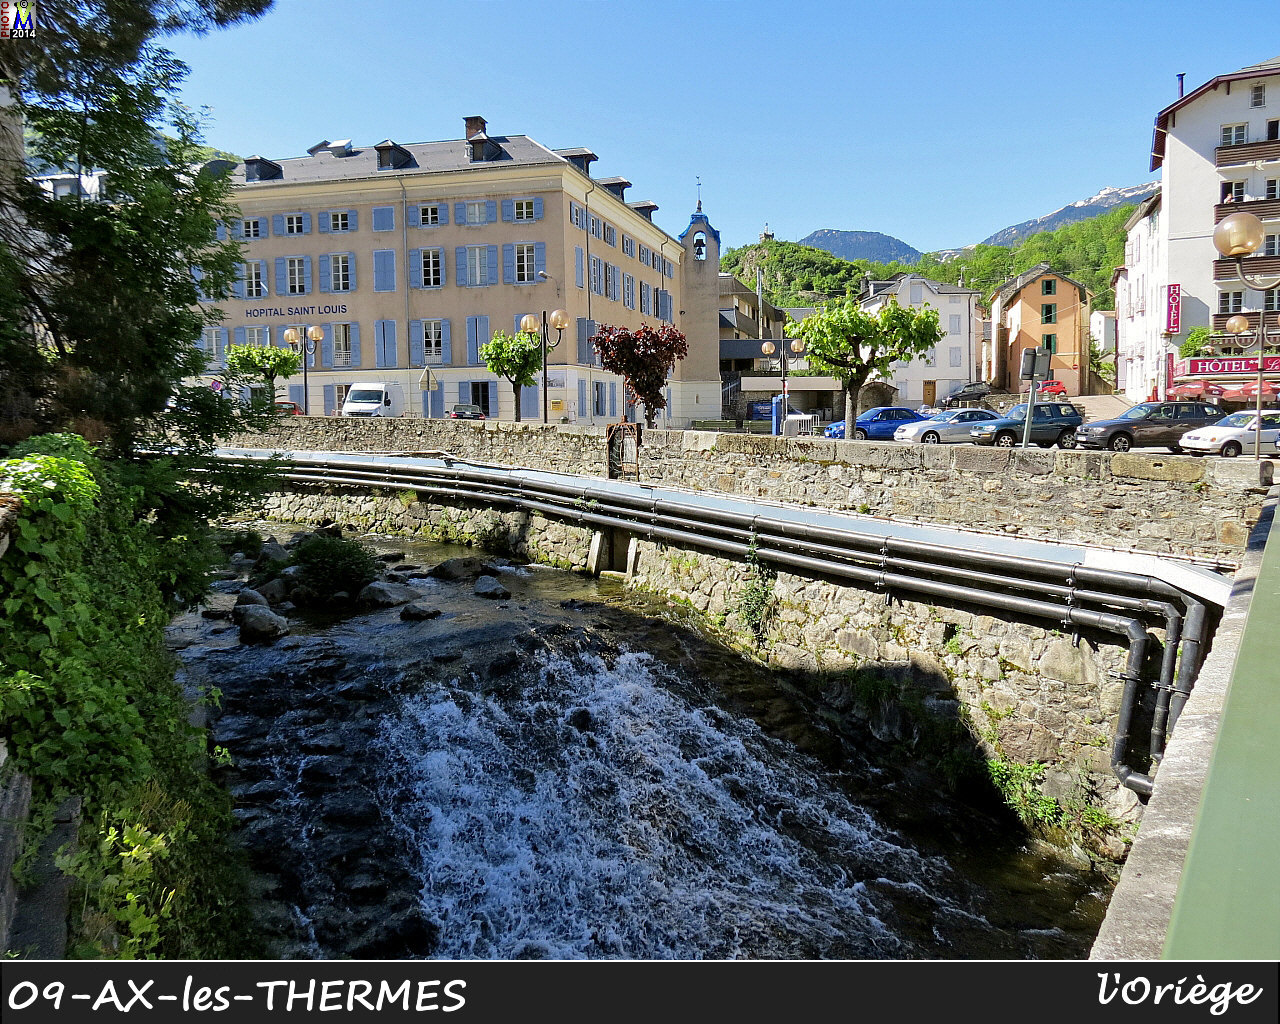 09AX-THERMES_Oriege_100.jpg